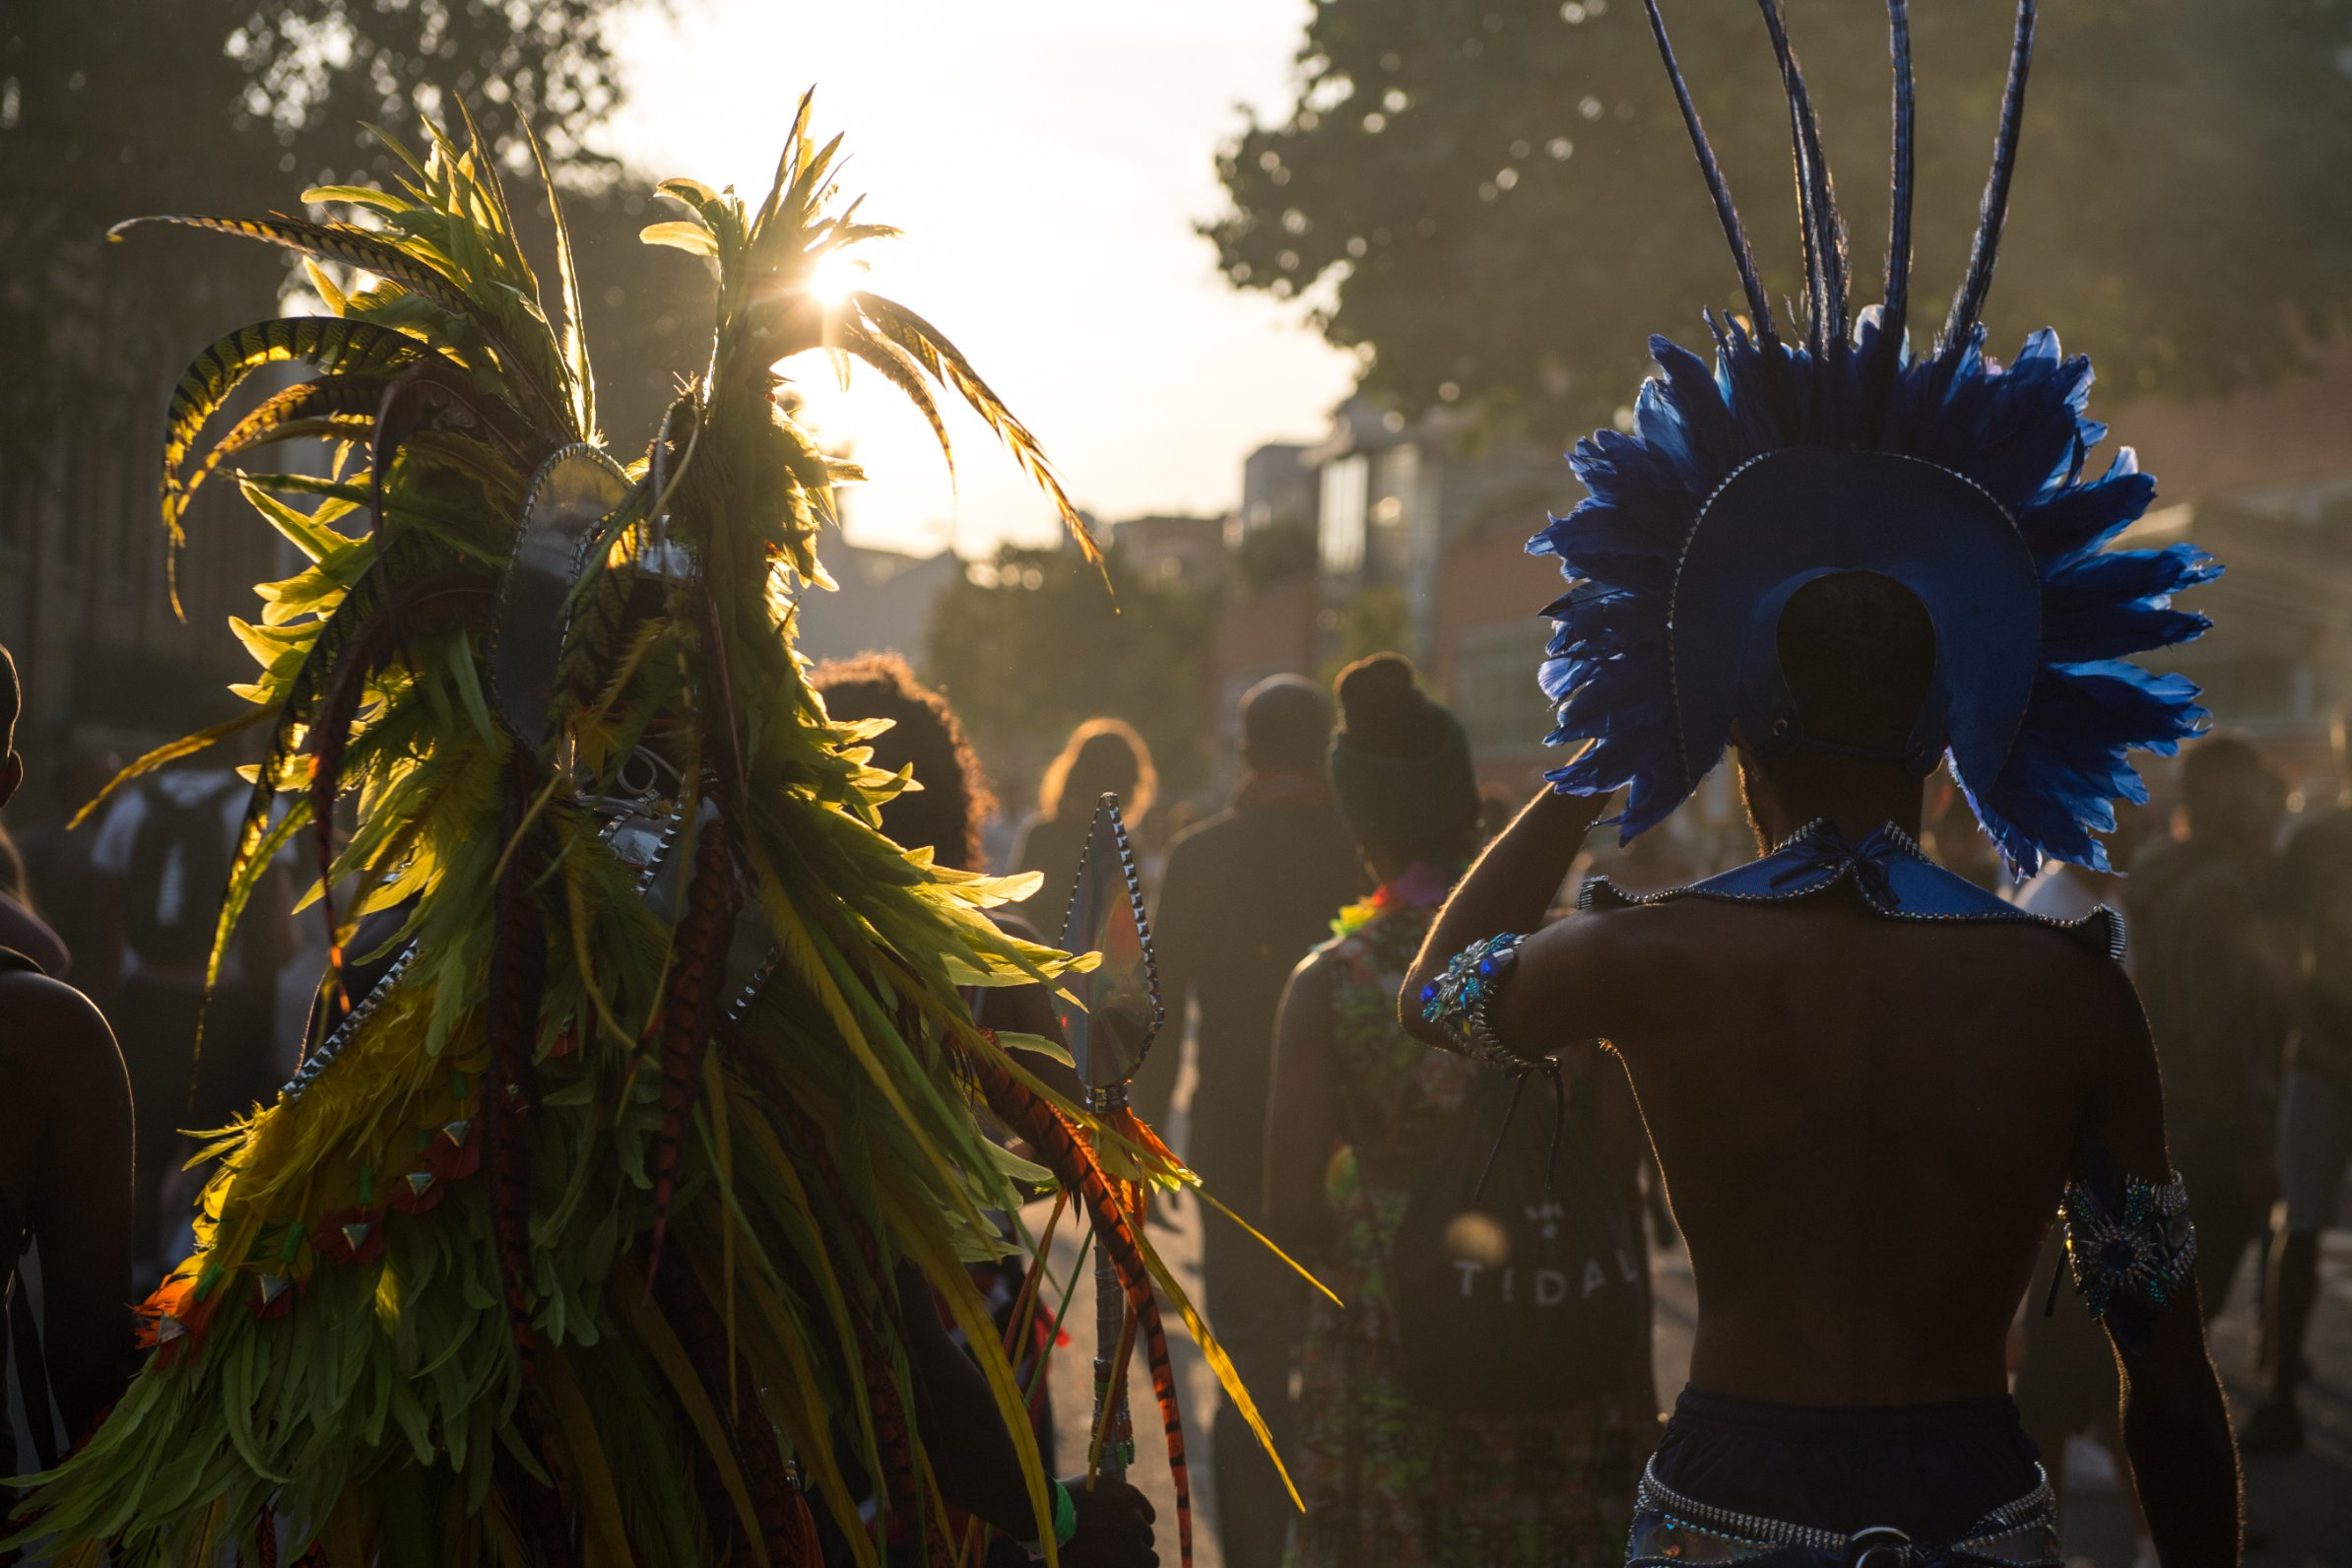 The Notting Hill Carnival sees about 1 million people descend on the streets of west London.